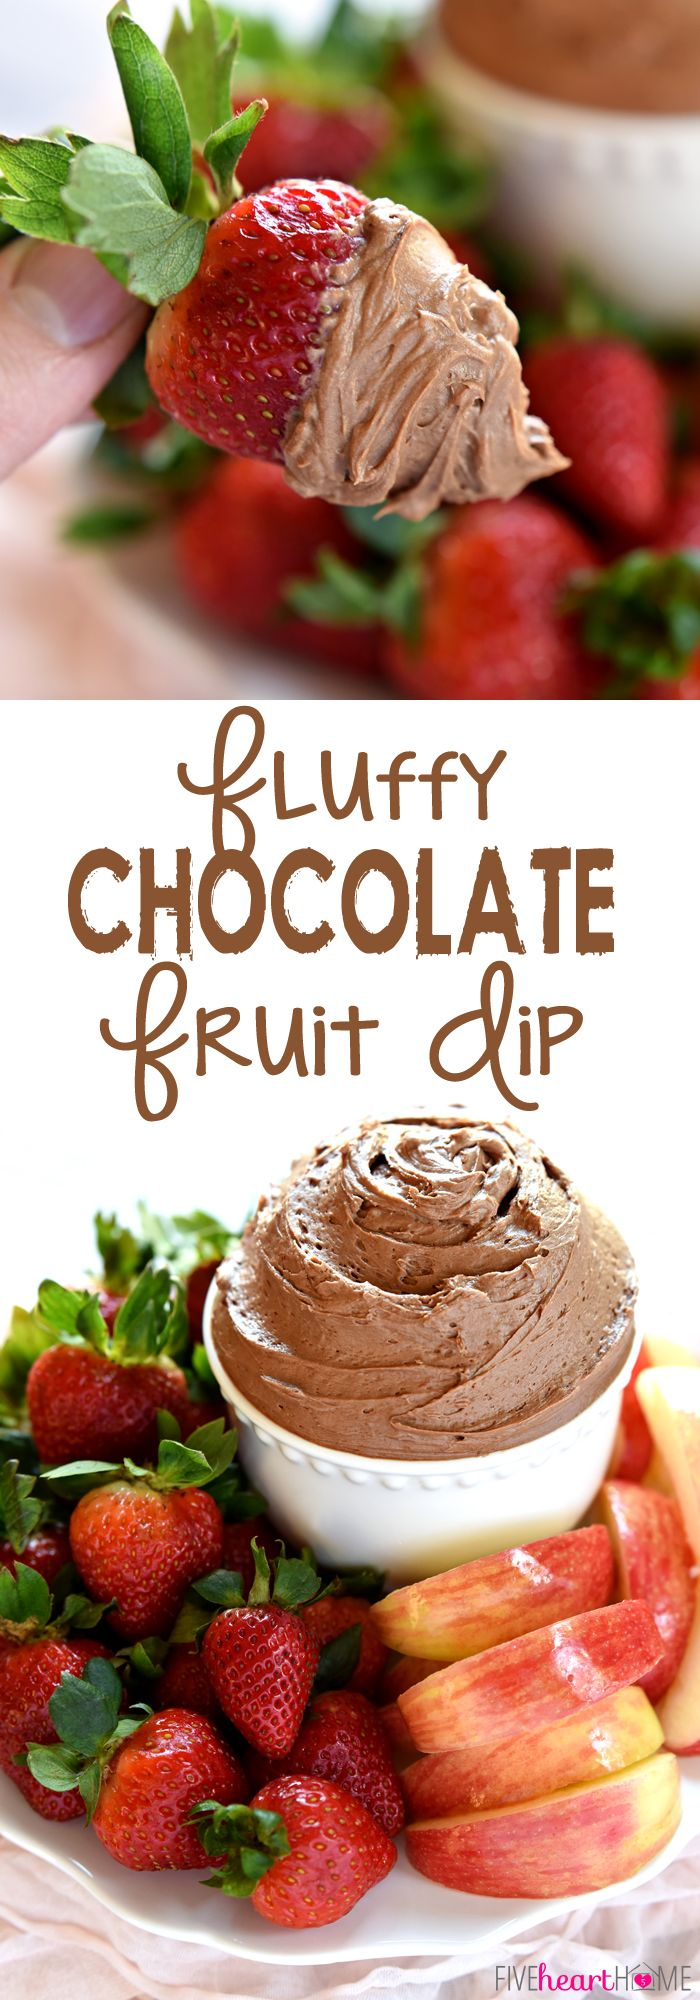 Fluffy Chocolate Fruit Dip FoodBlogs.com                                                                                                                                                                                 More